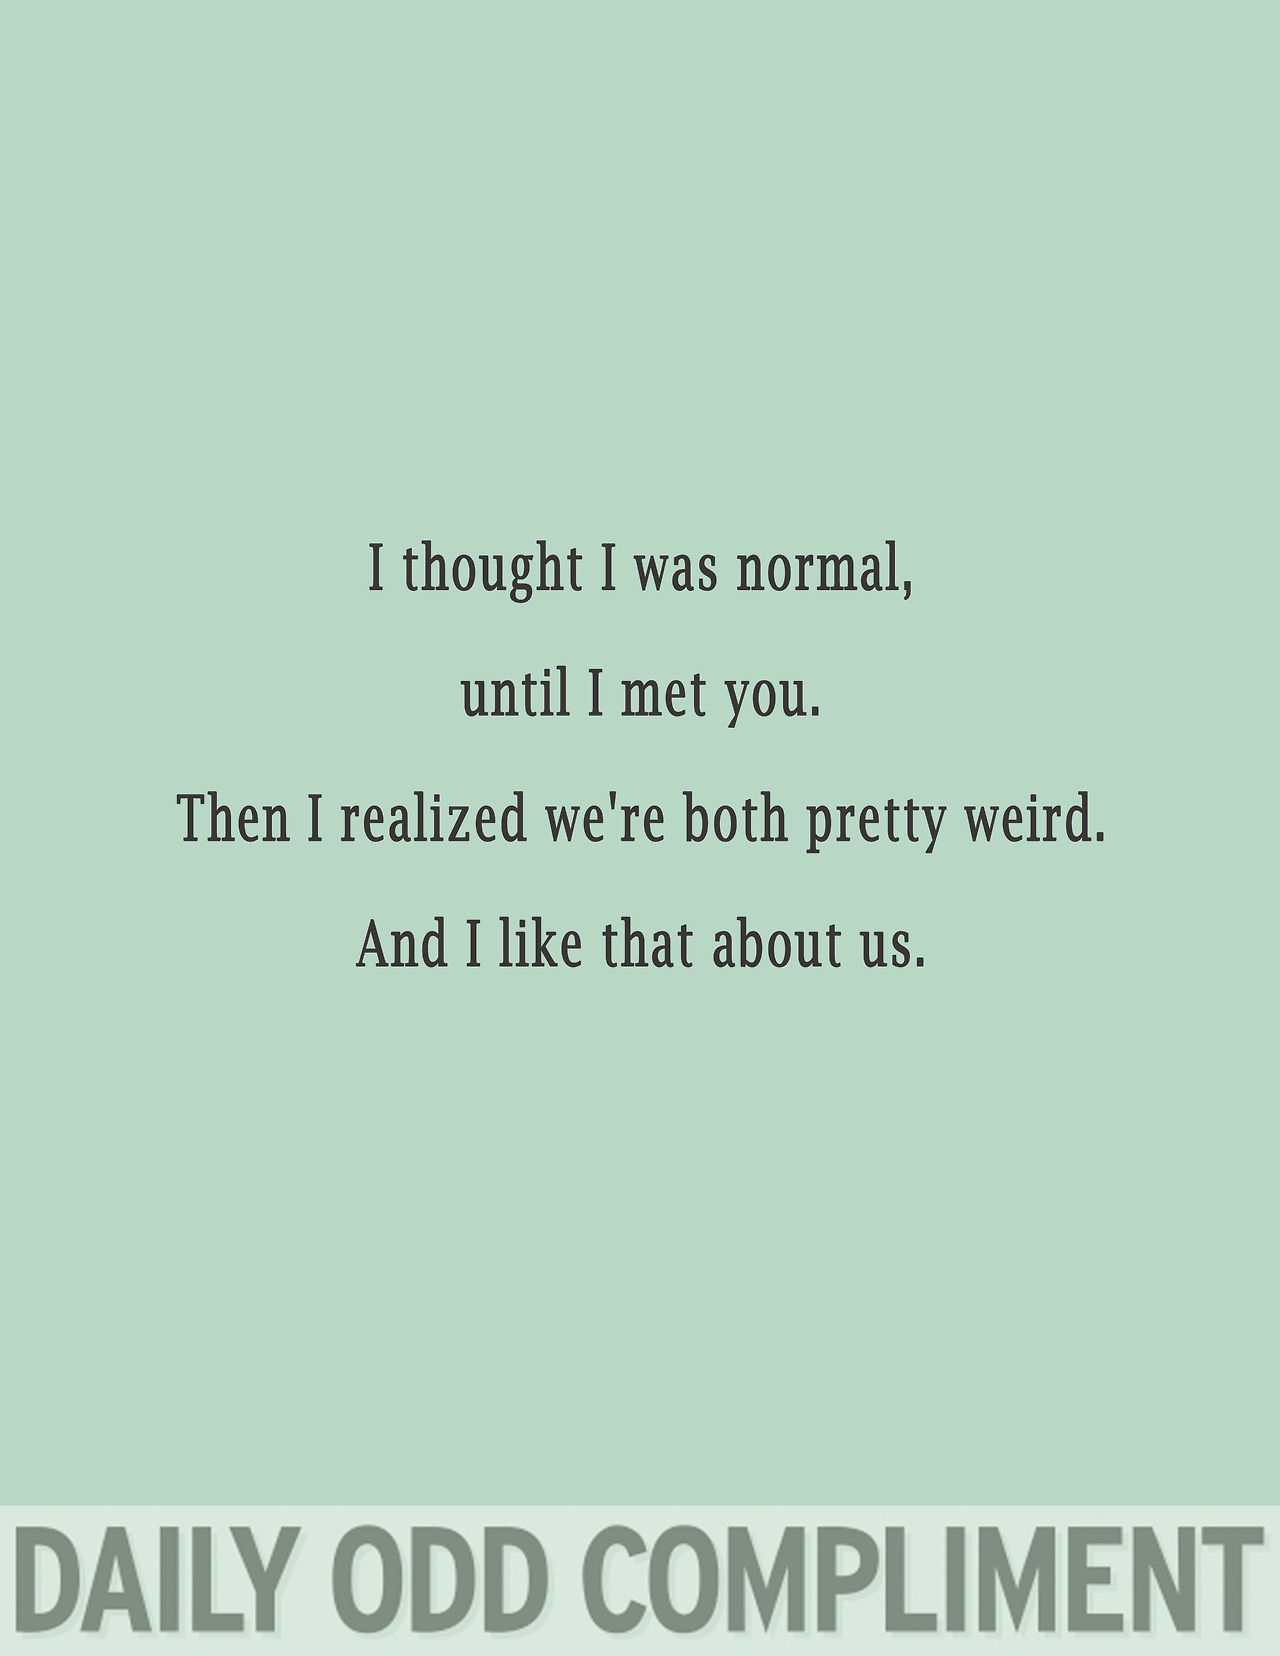 Quotes About Us I Love That About Us  Words Pinterest  Odd Compliments